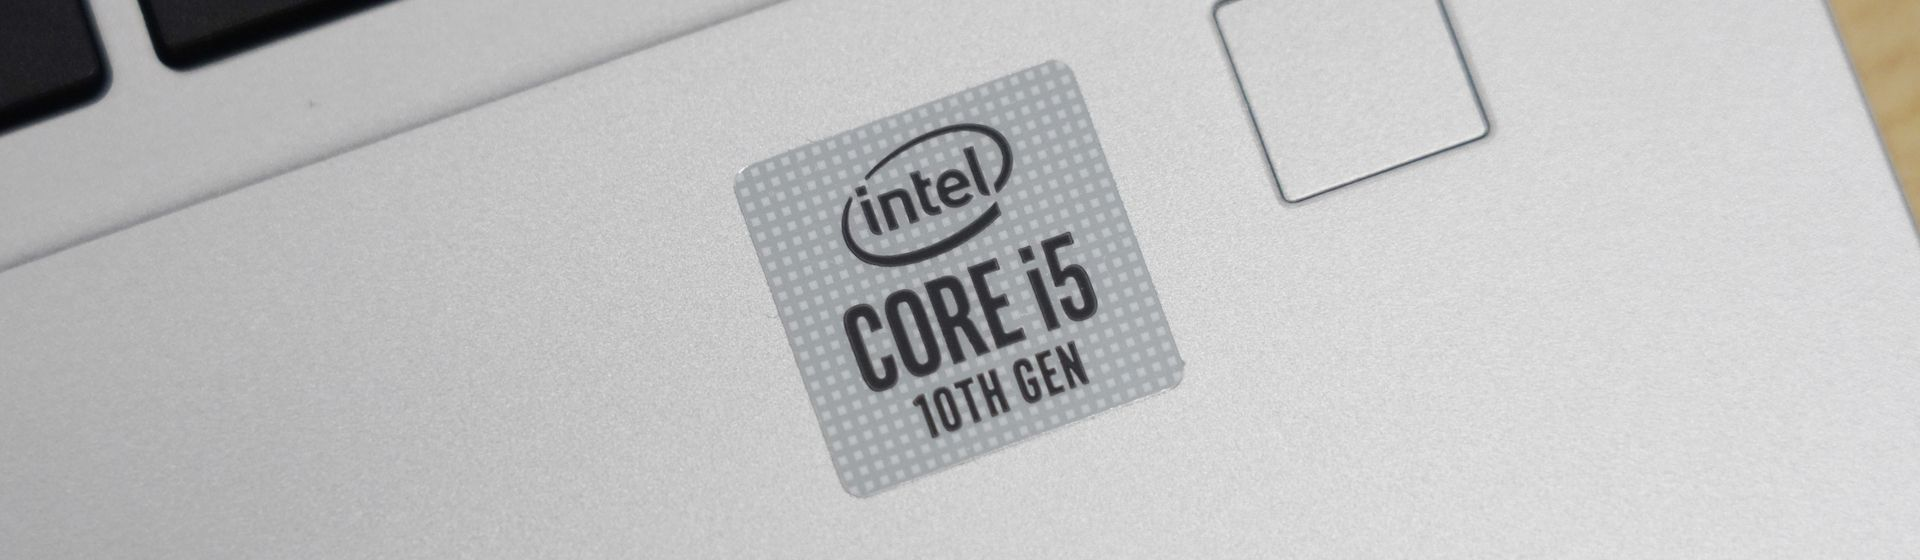 Intel Core U ou H? Entenda os chips de notebook antes de comprar